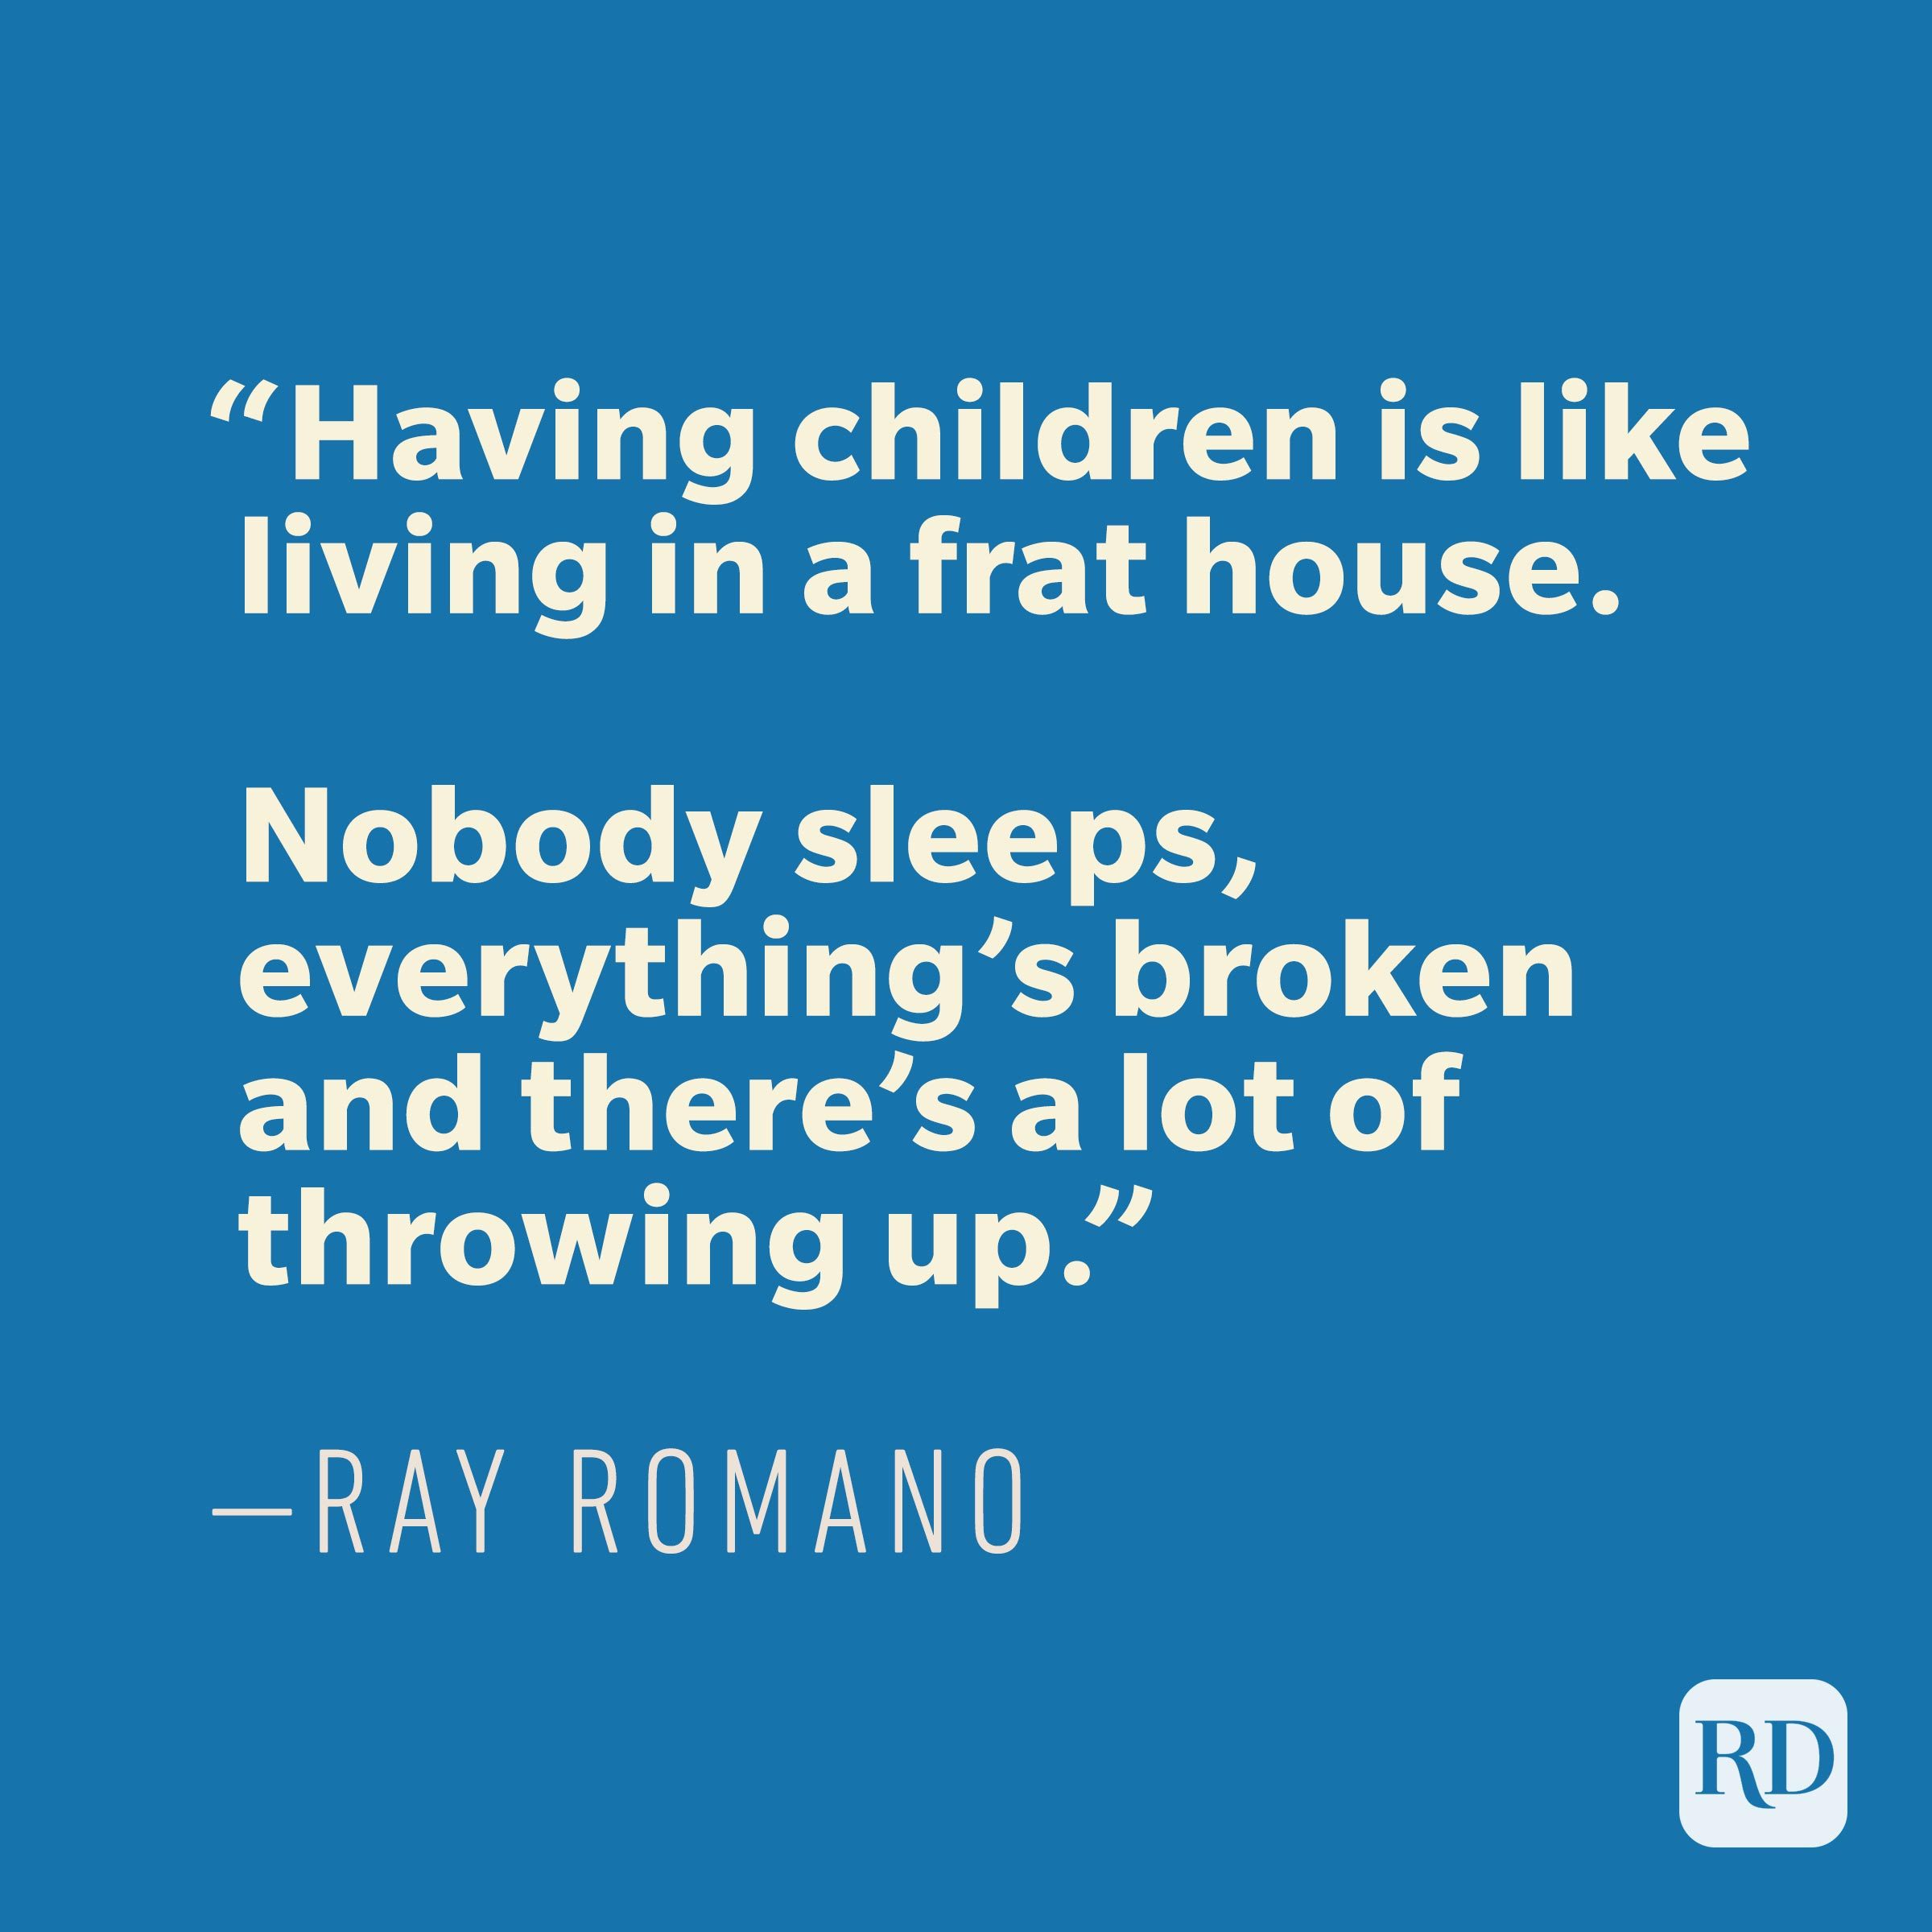 """Having children is like living in a frat house. Nobody sleeps, everything's broken and there's a lot of throwing up."" —RAY ROMANO"